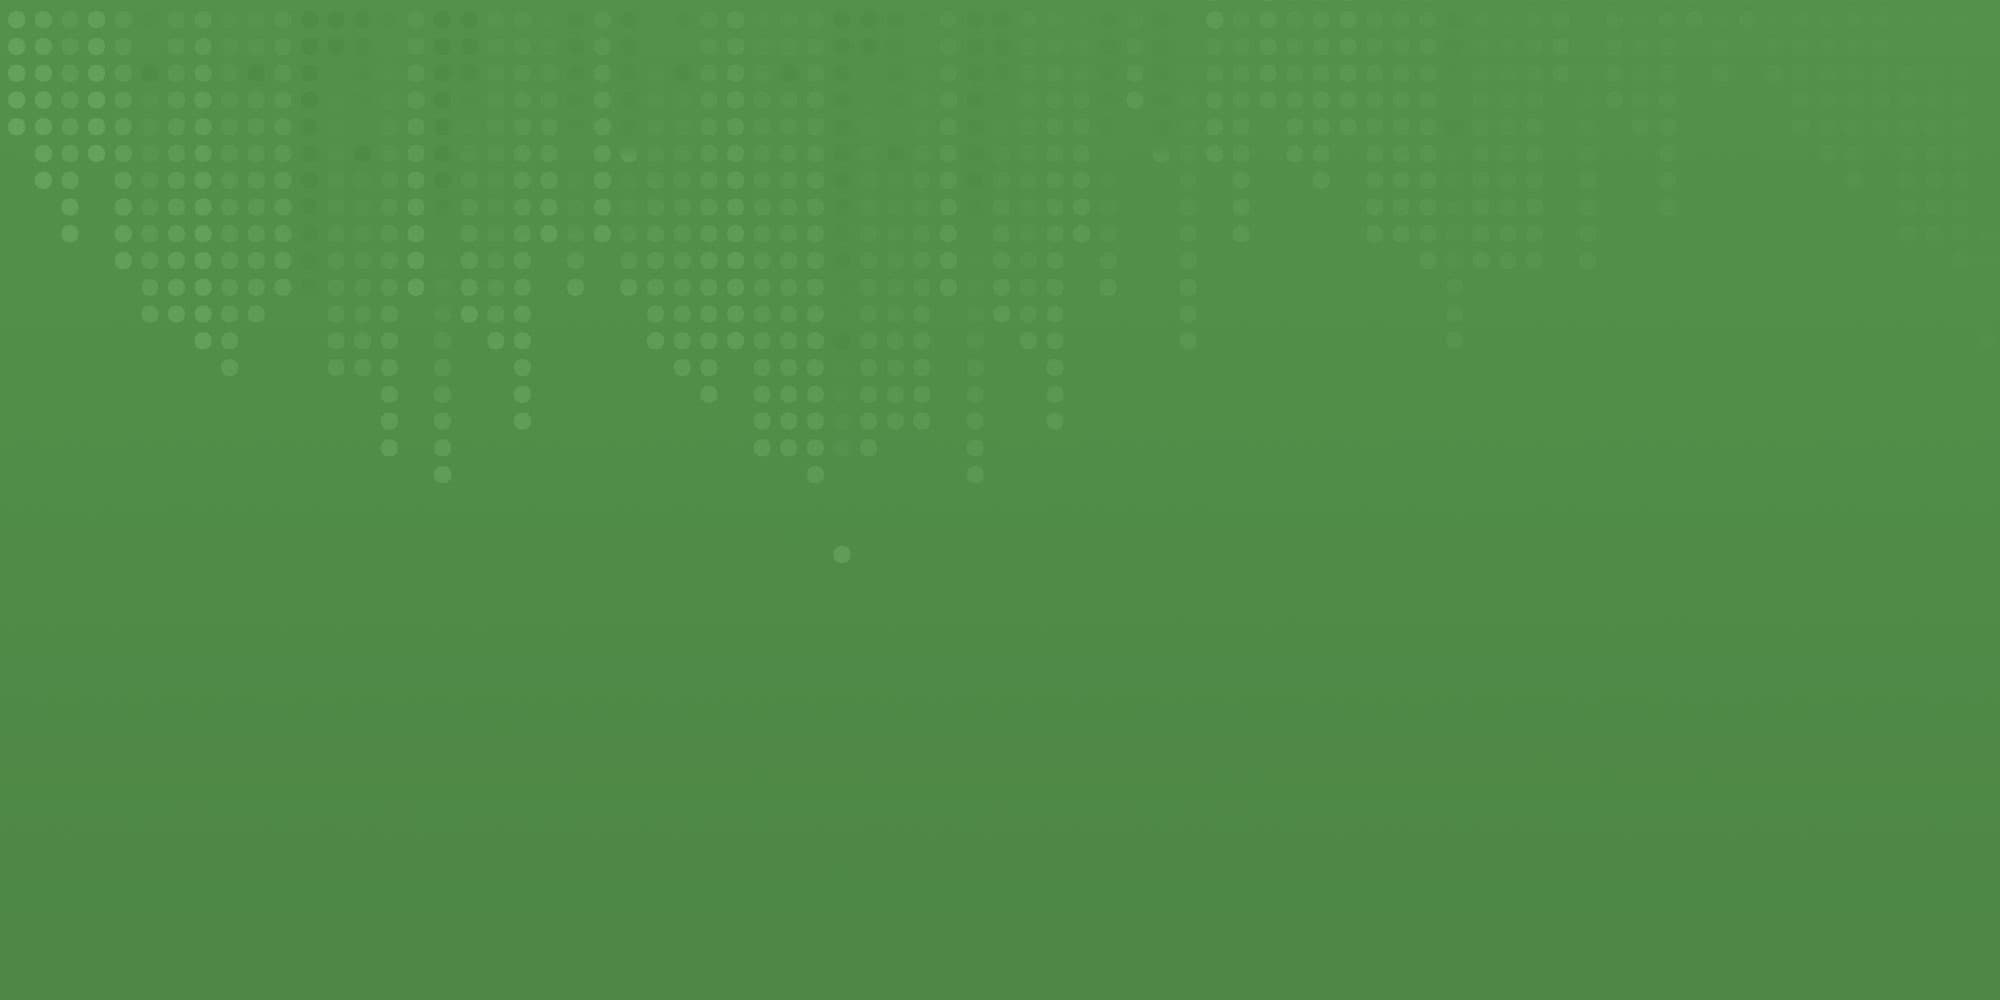 green abstract dots background